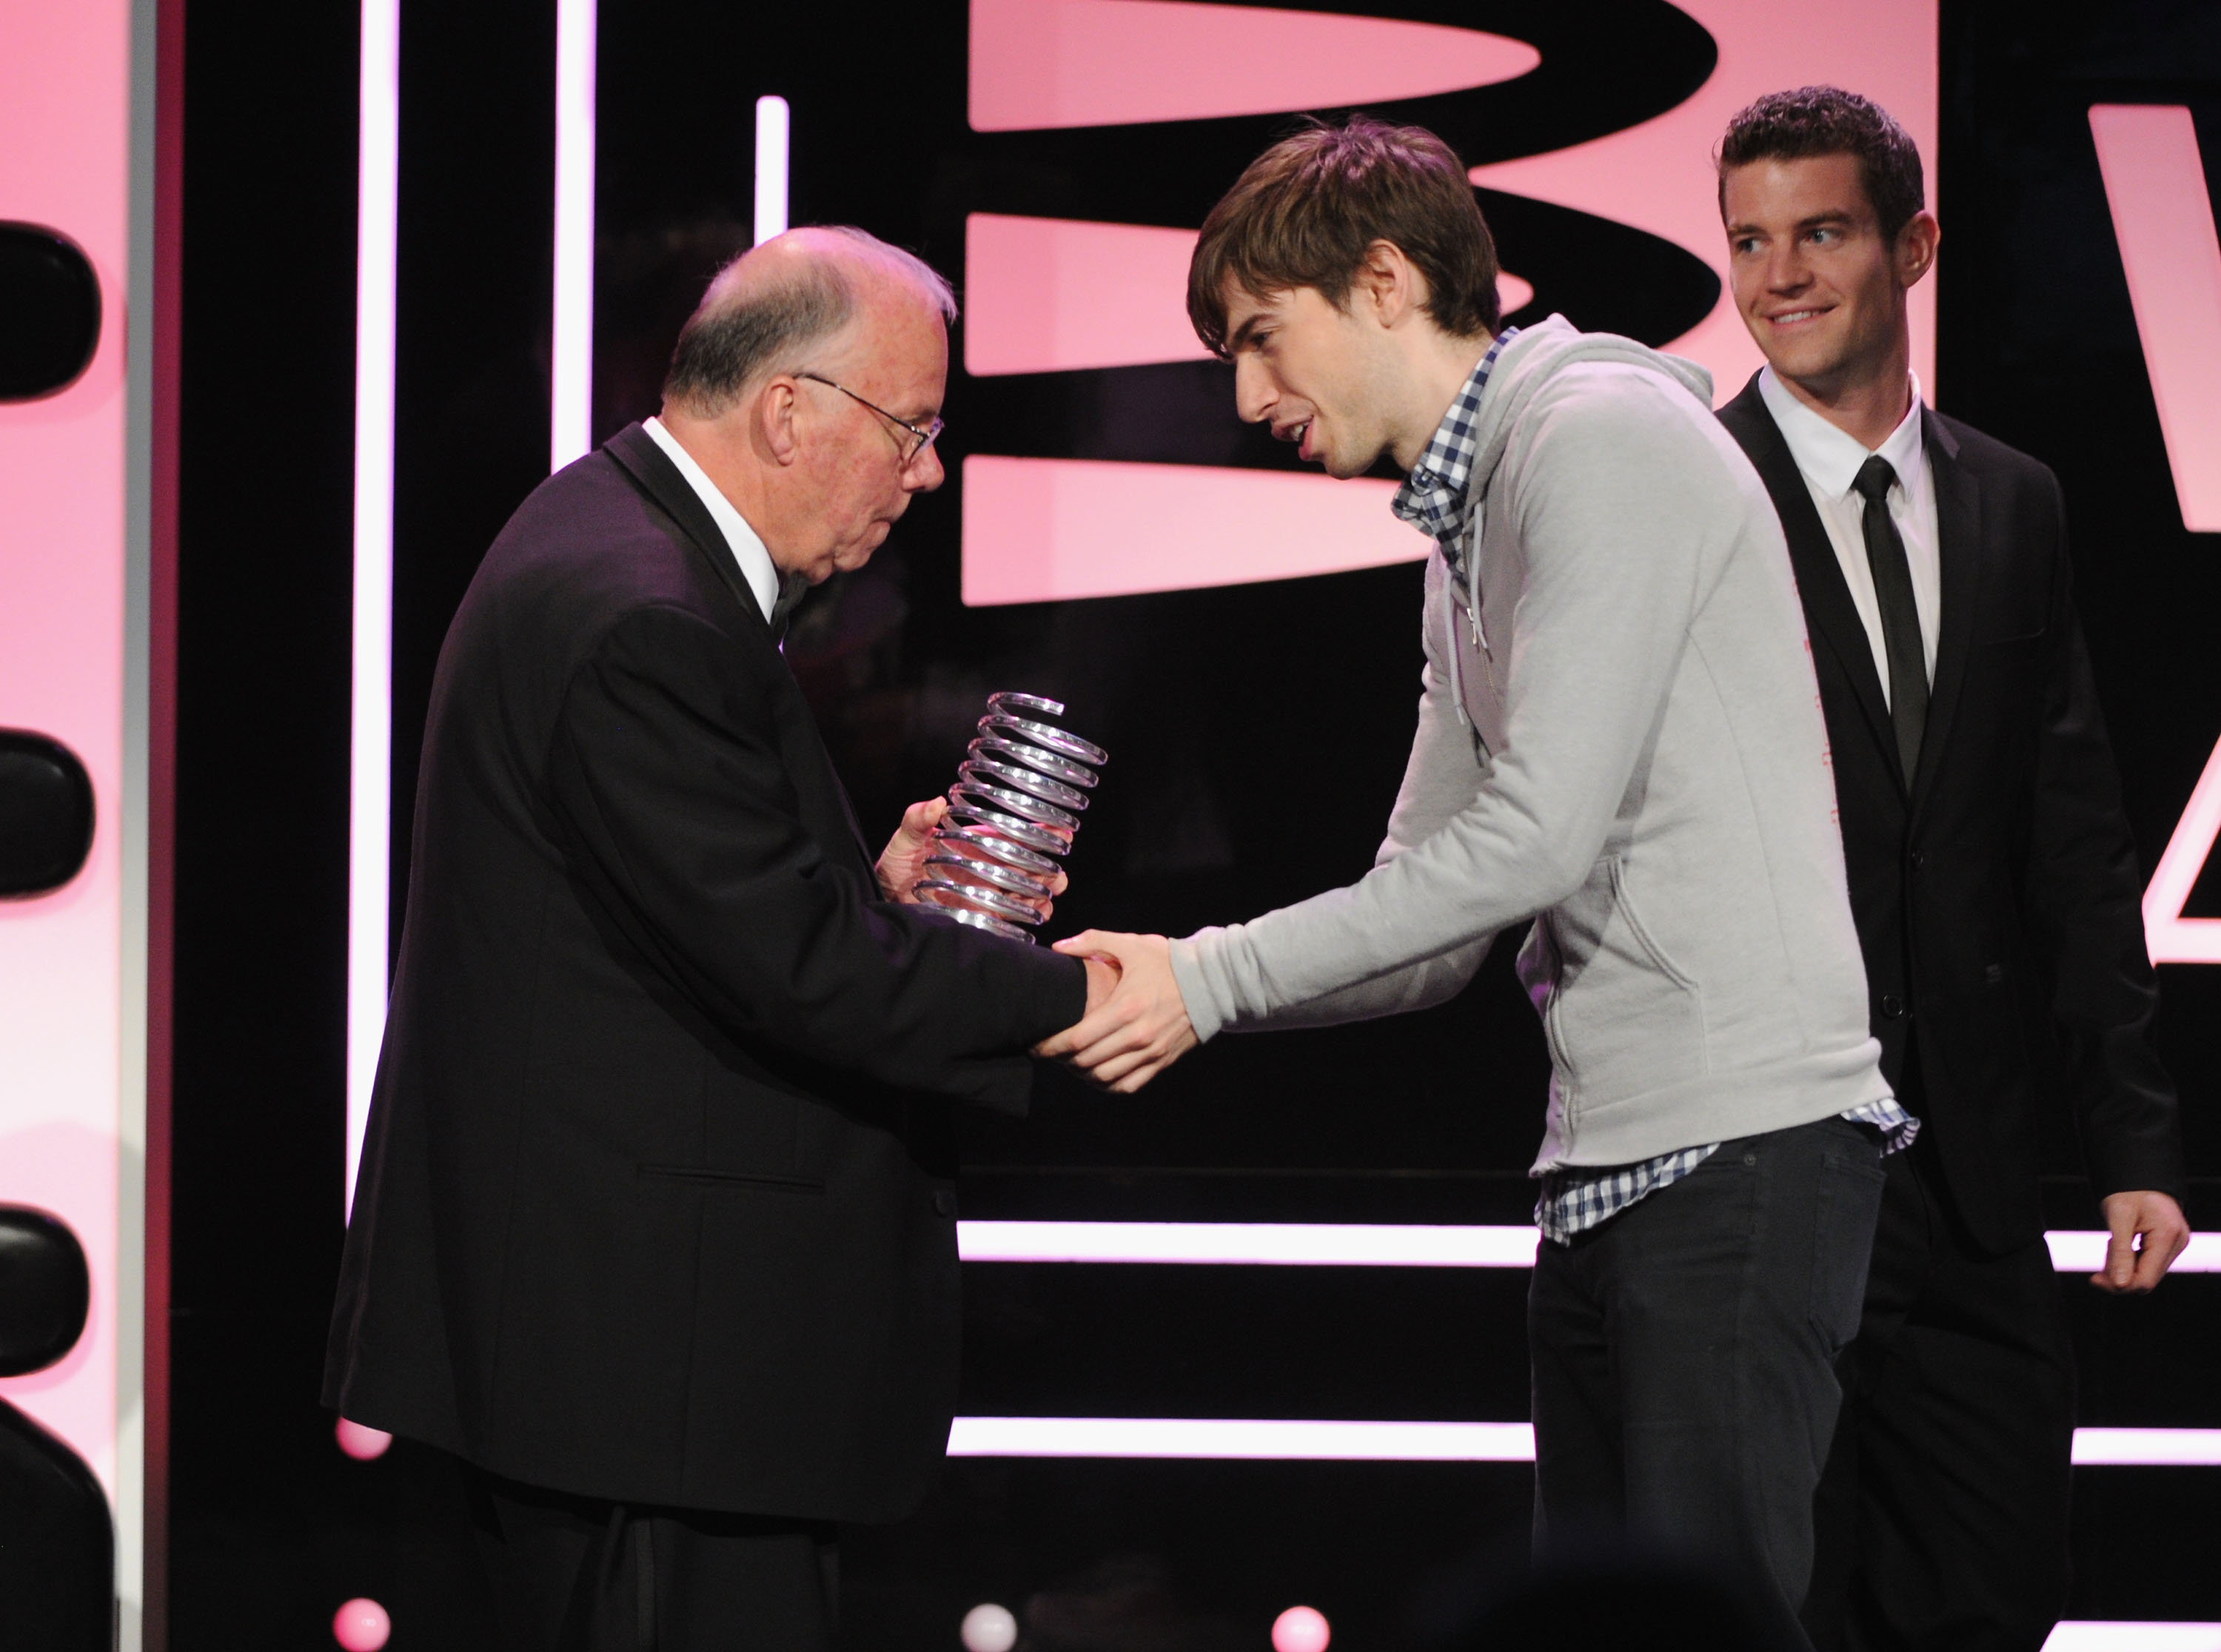 Steve Wilhite, inventor of the GIF file, receives an award at the 17th Annual Webby Awards  on May 21, 2013 in New York City.